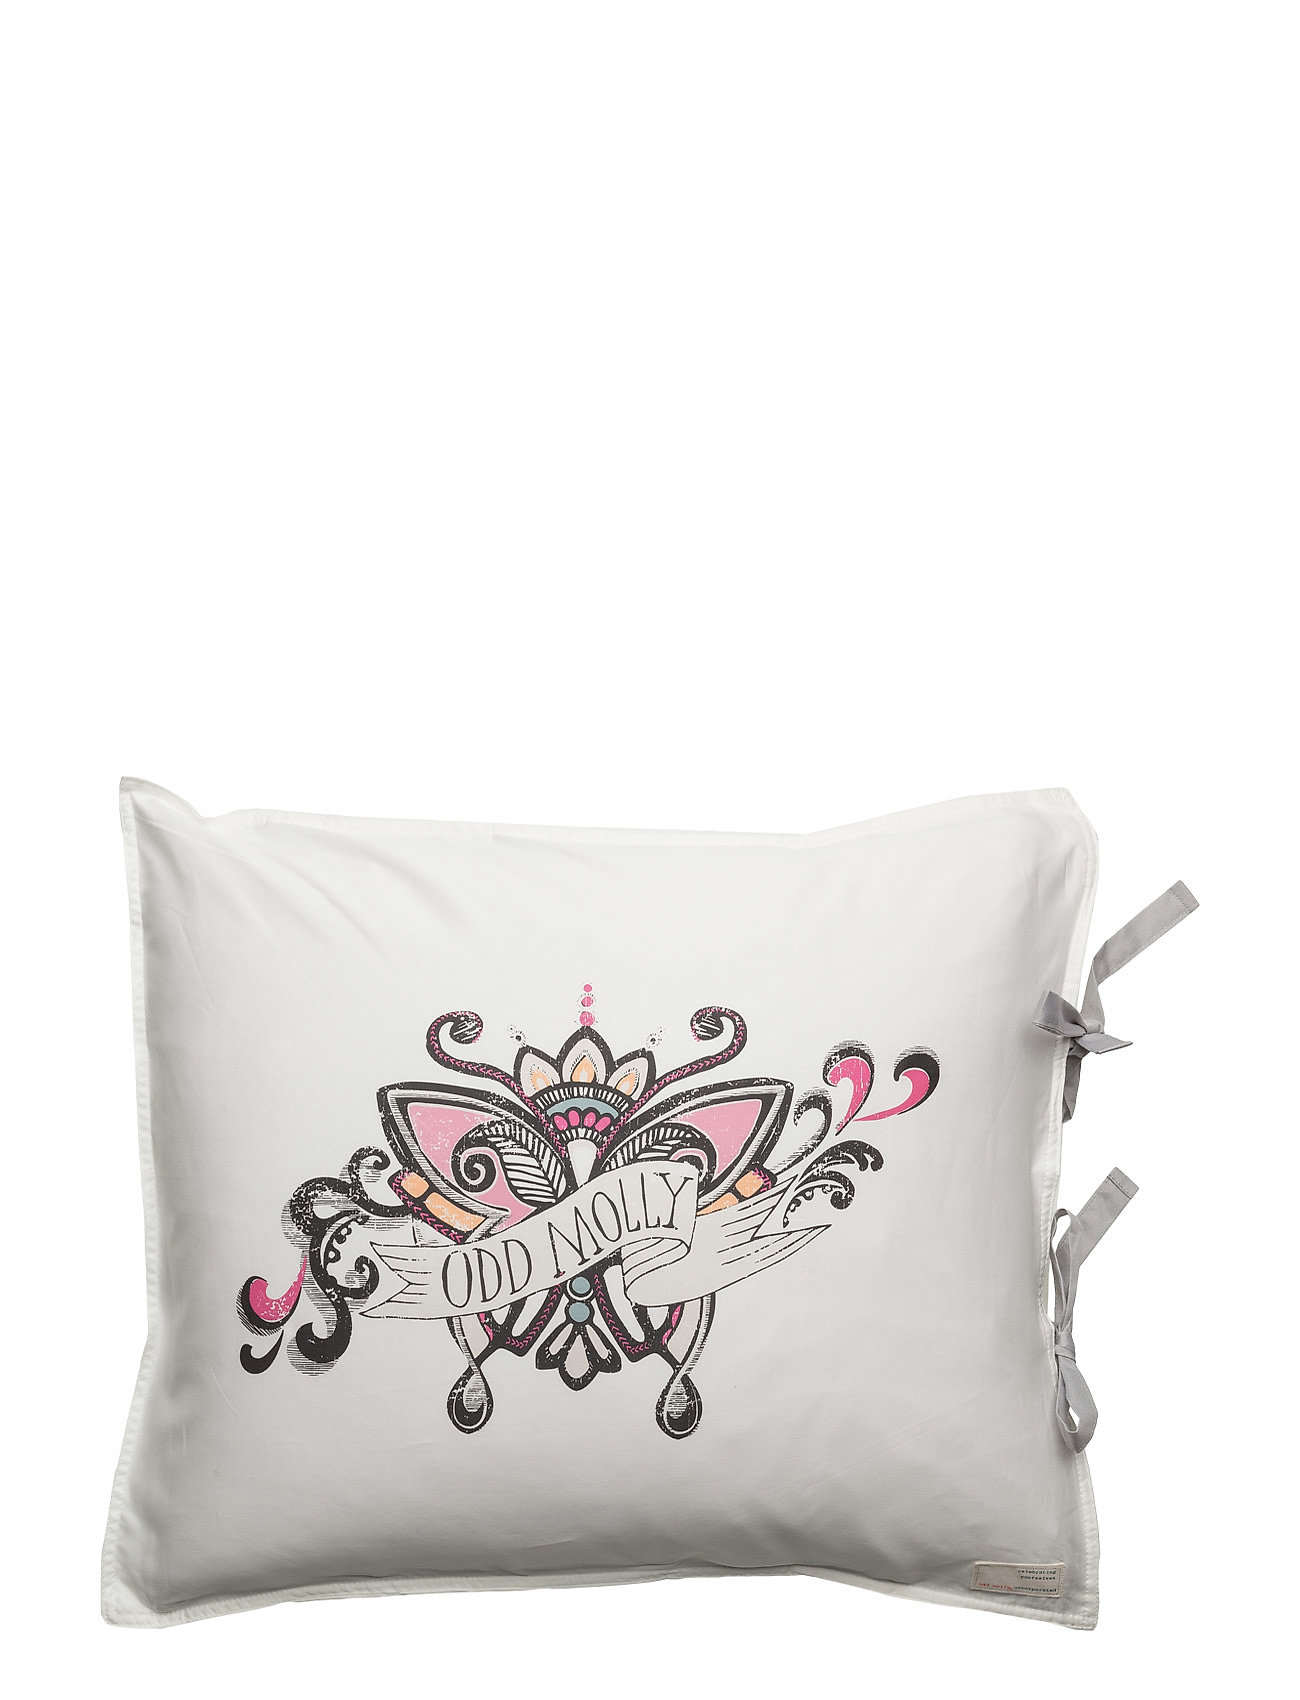 Lounging Around Pillowcase ODD MOLLY HOME Hjem til Damer i Slik